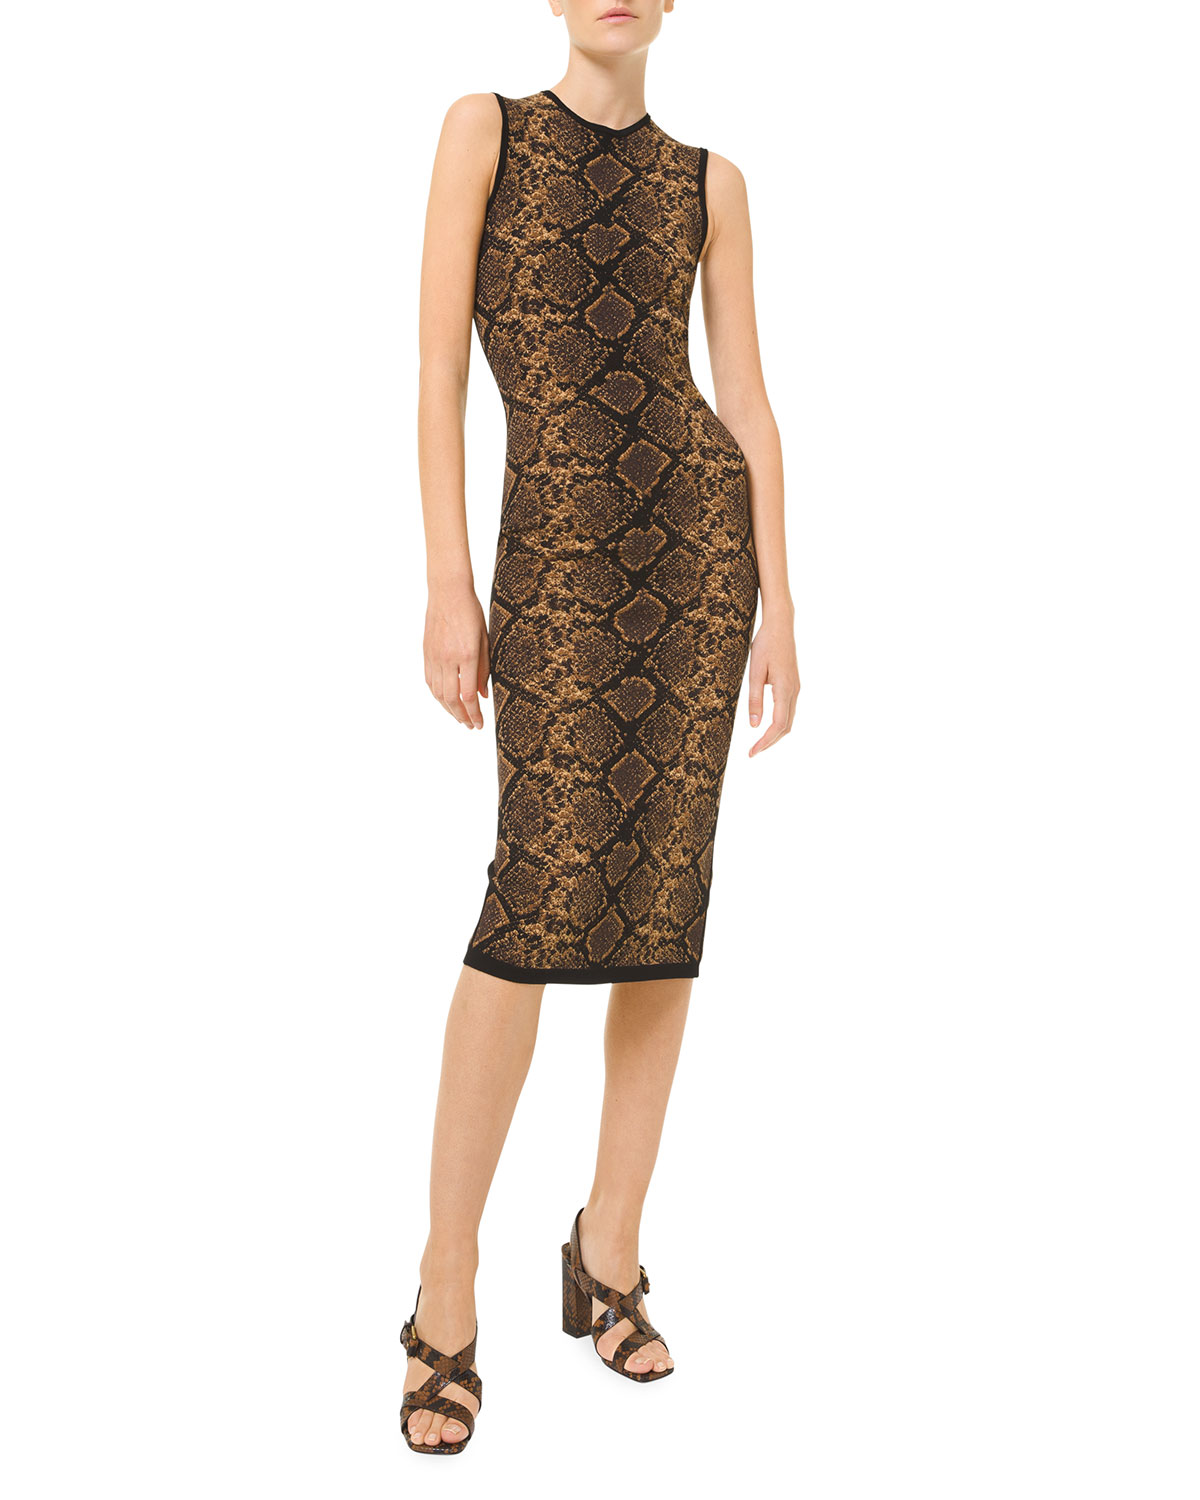 Michael Kors PYTHON KNIT JACQUARD SHEATH DRESS